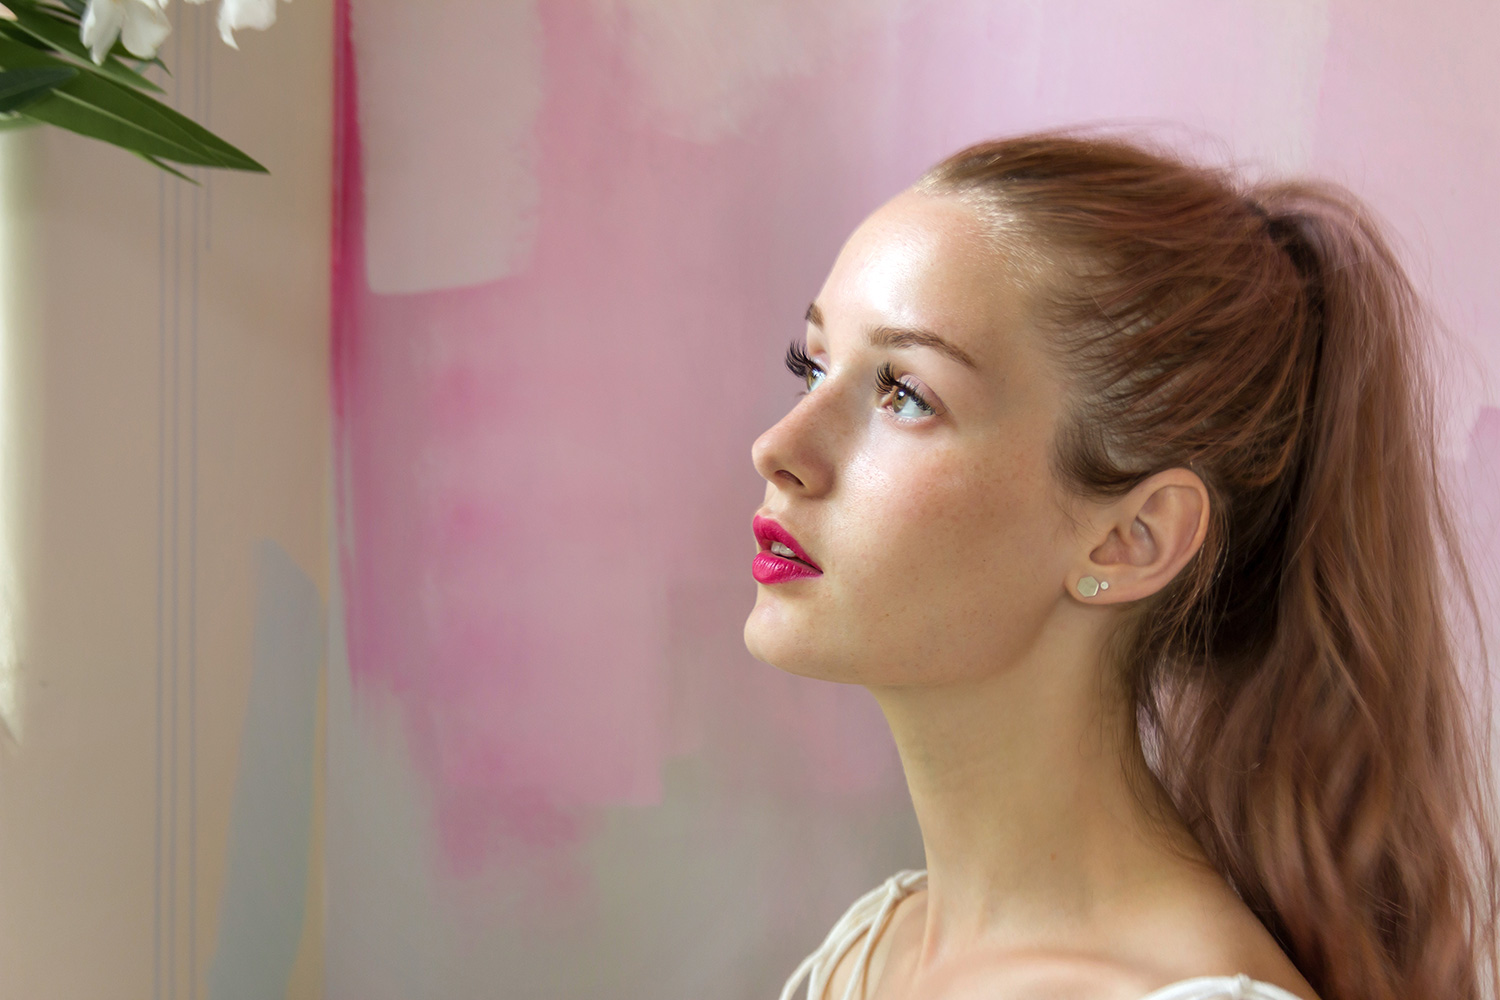 Dreamy portrait of young model, sunlight from nearby window illuminates her skin. The model's bright pink lipstick pops against the soft colors of the abstract mural behind her.